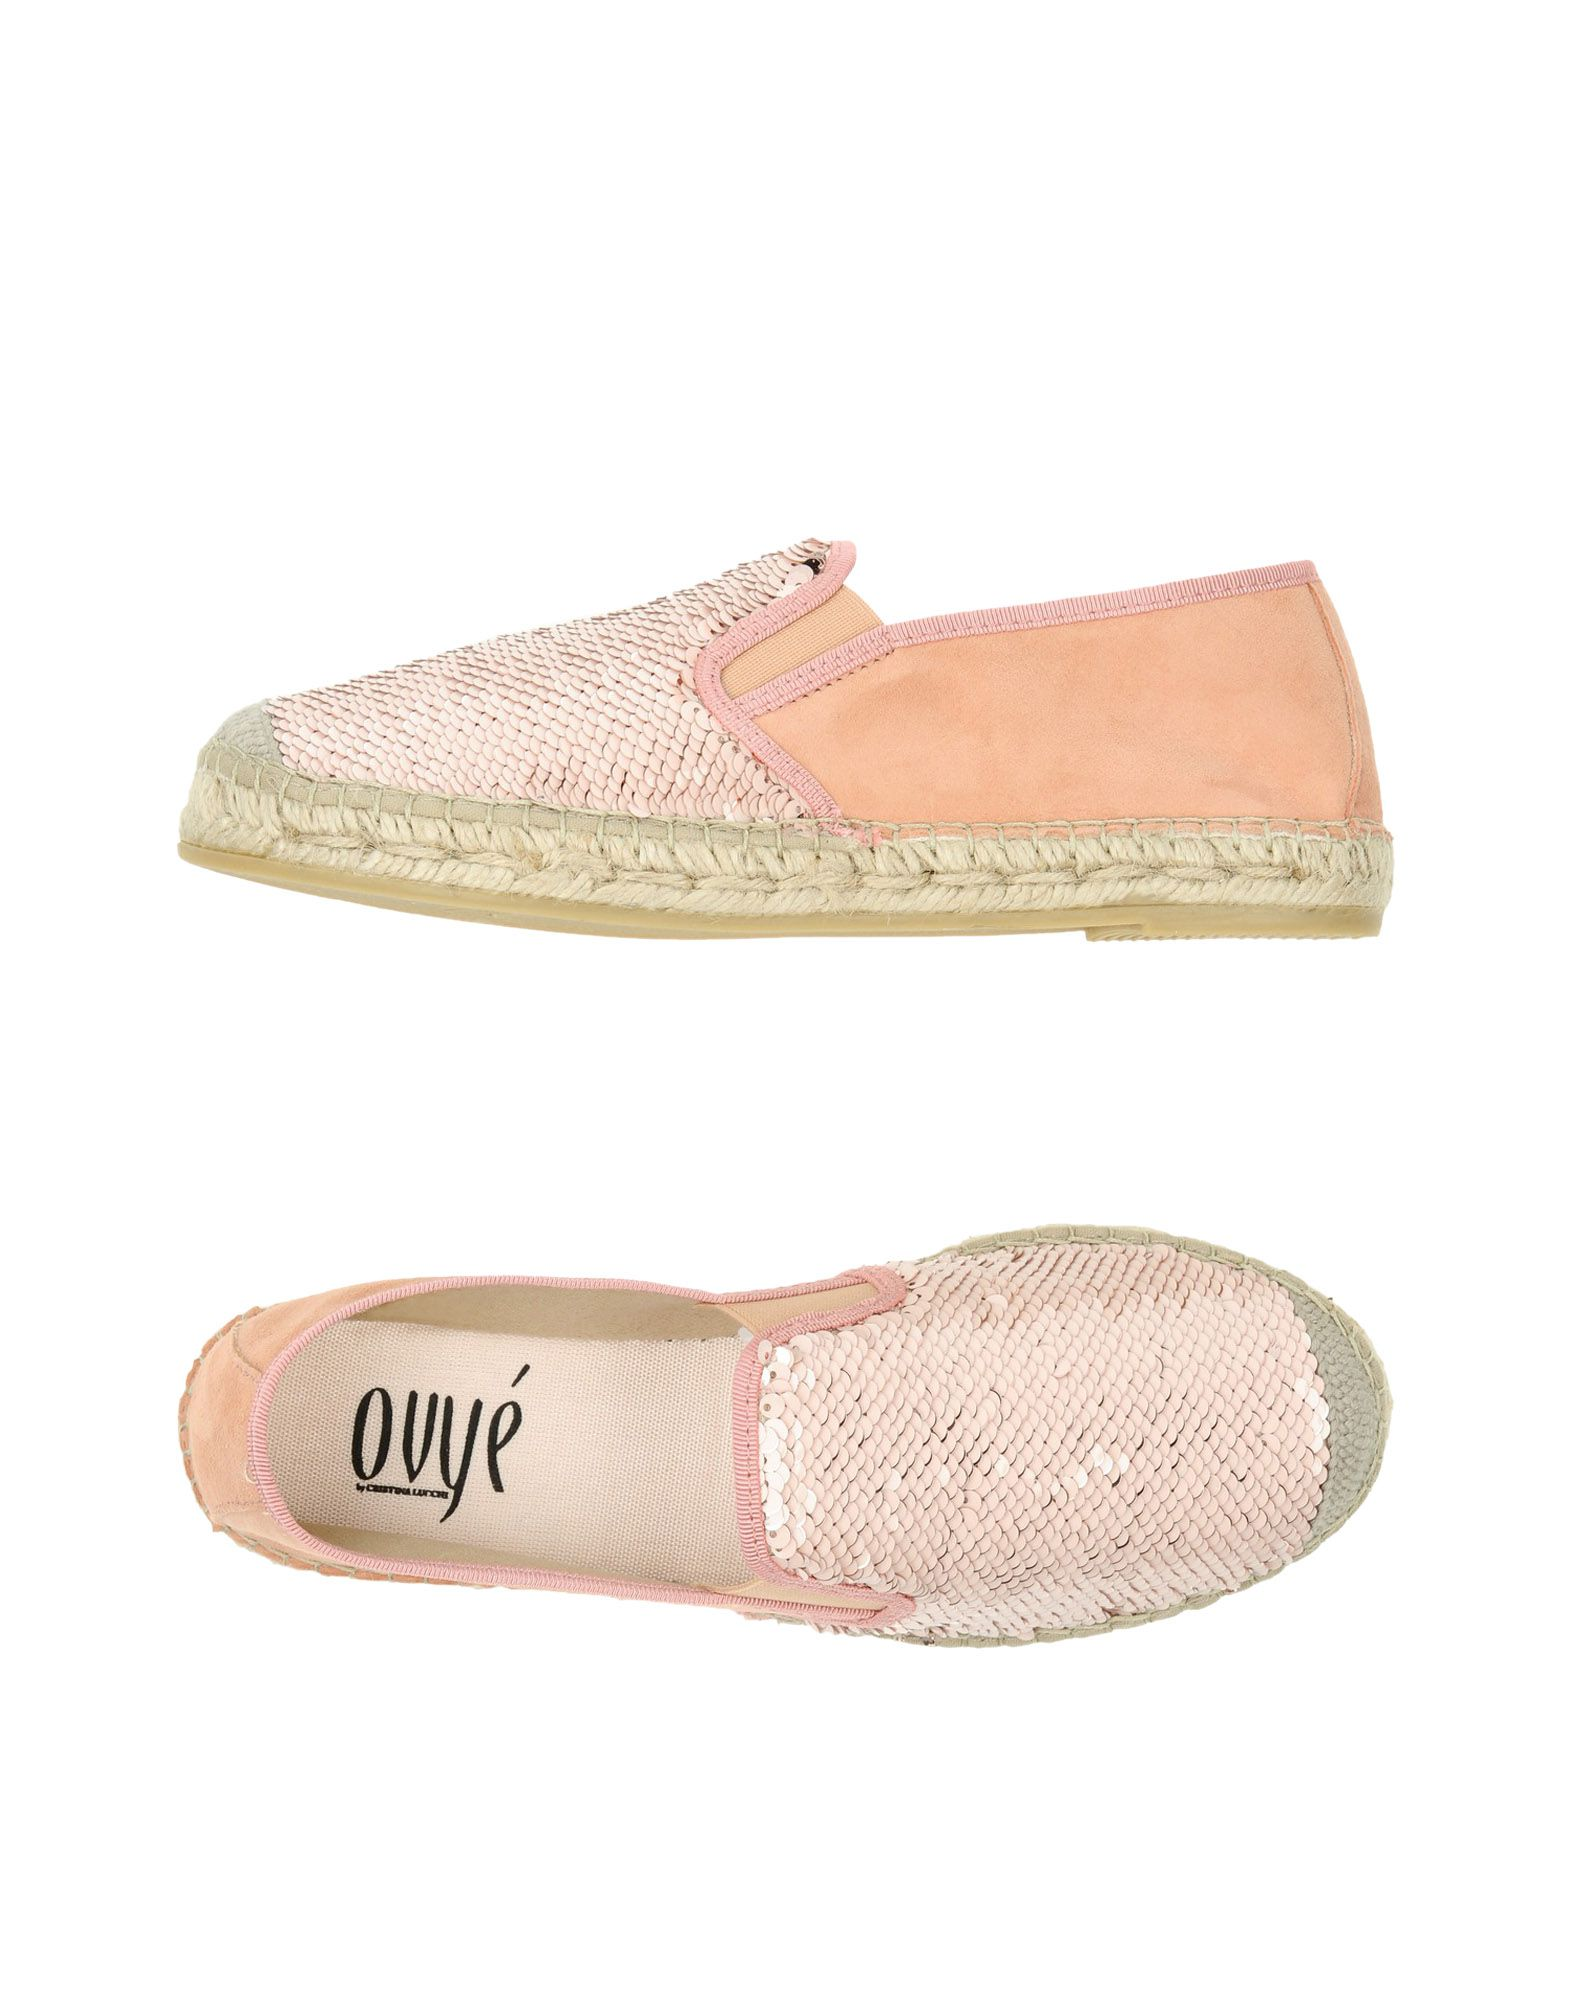 Ovye' By Cristina Lucchi Sneakers Damen  11336351TV